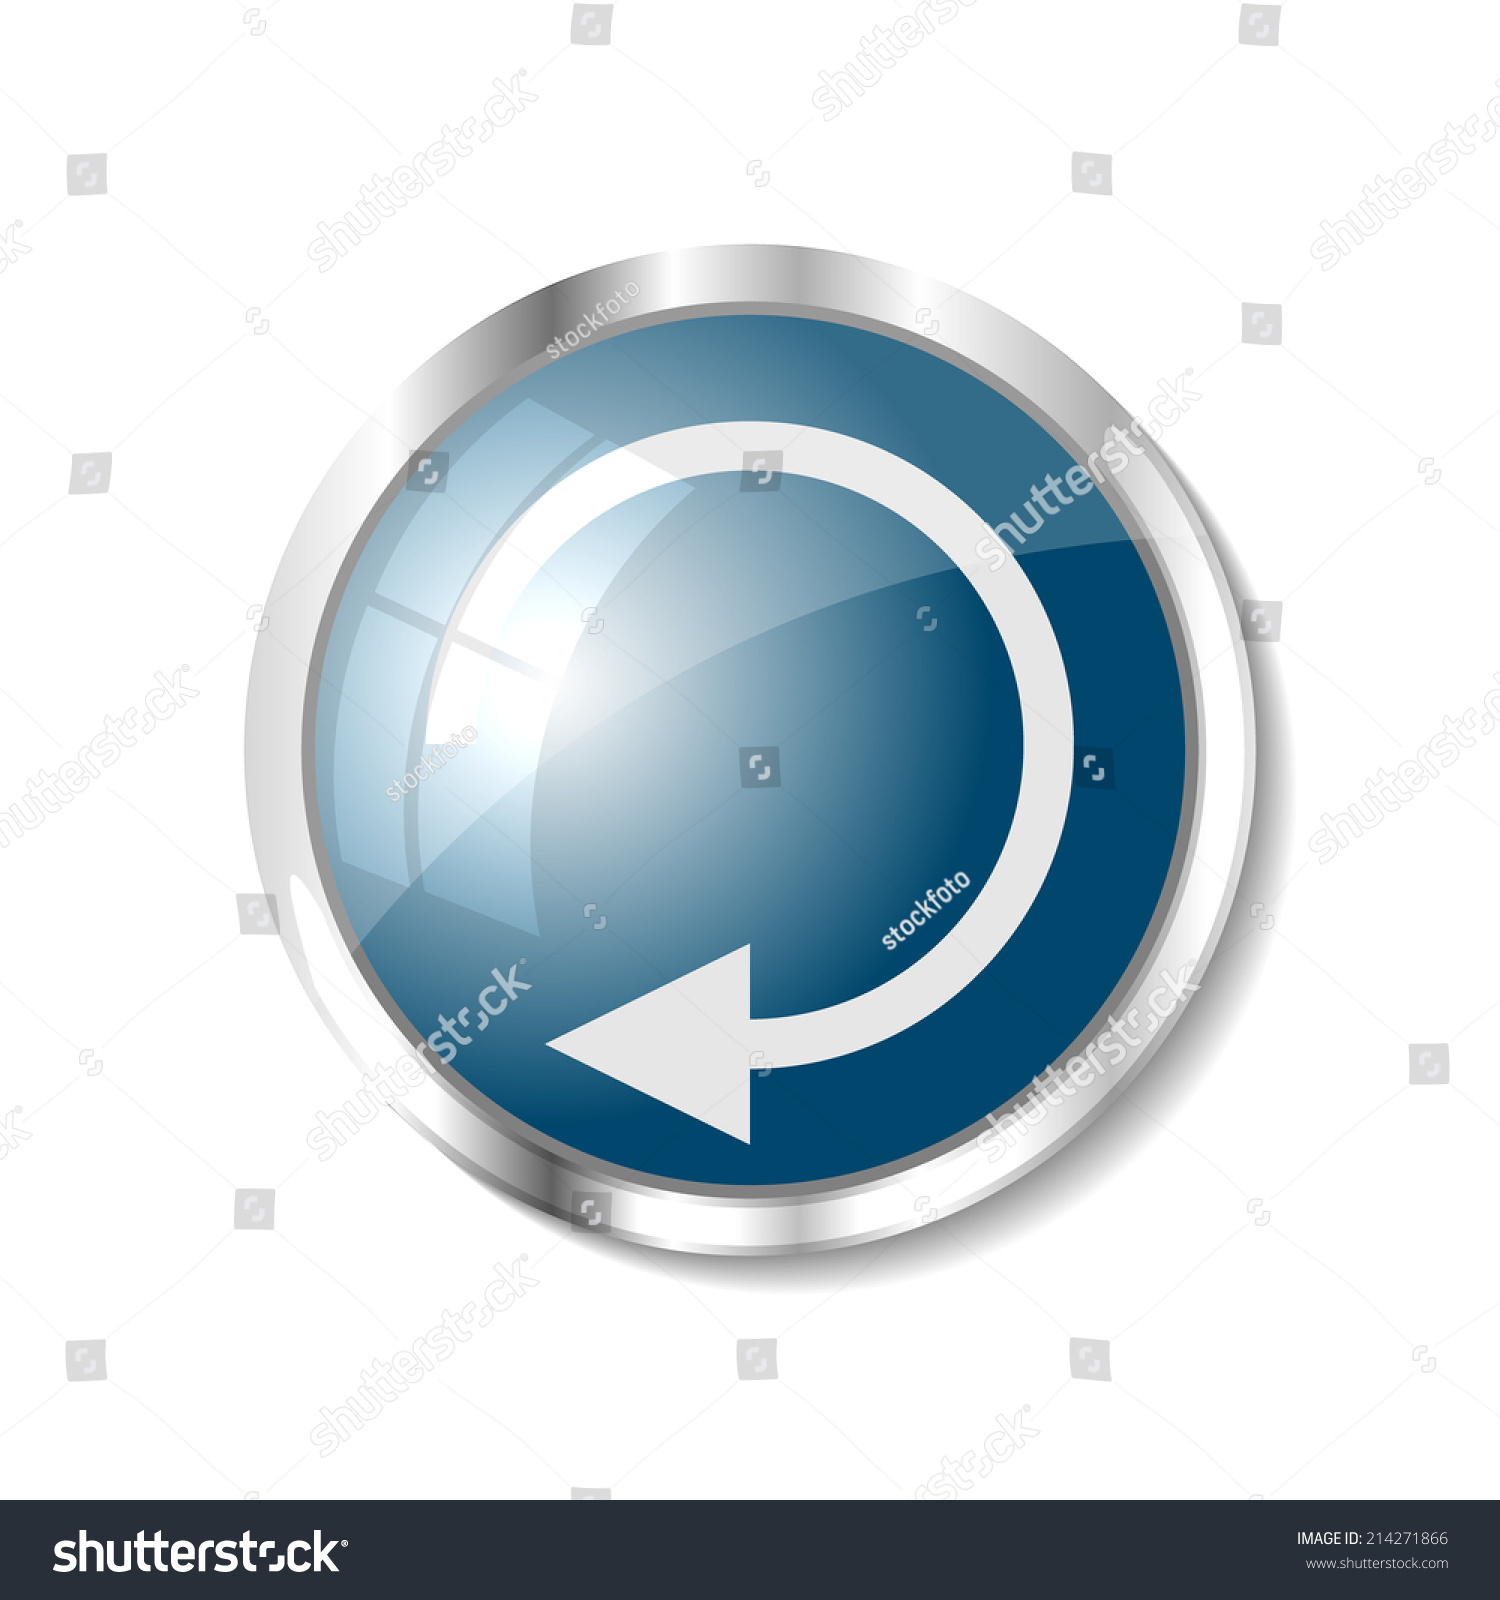 Replay Blue Button Icon Vector Illustration Stock Vector ...